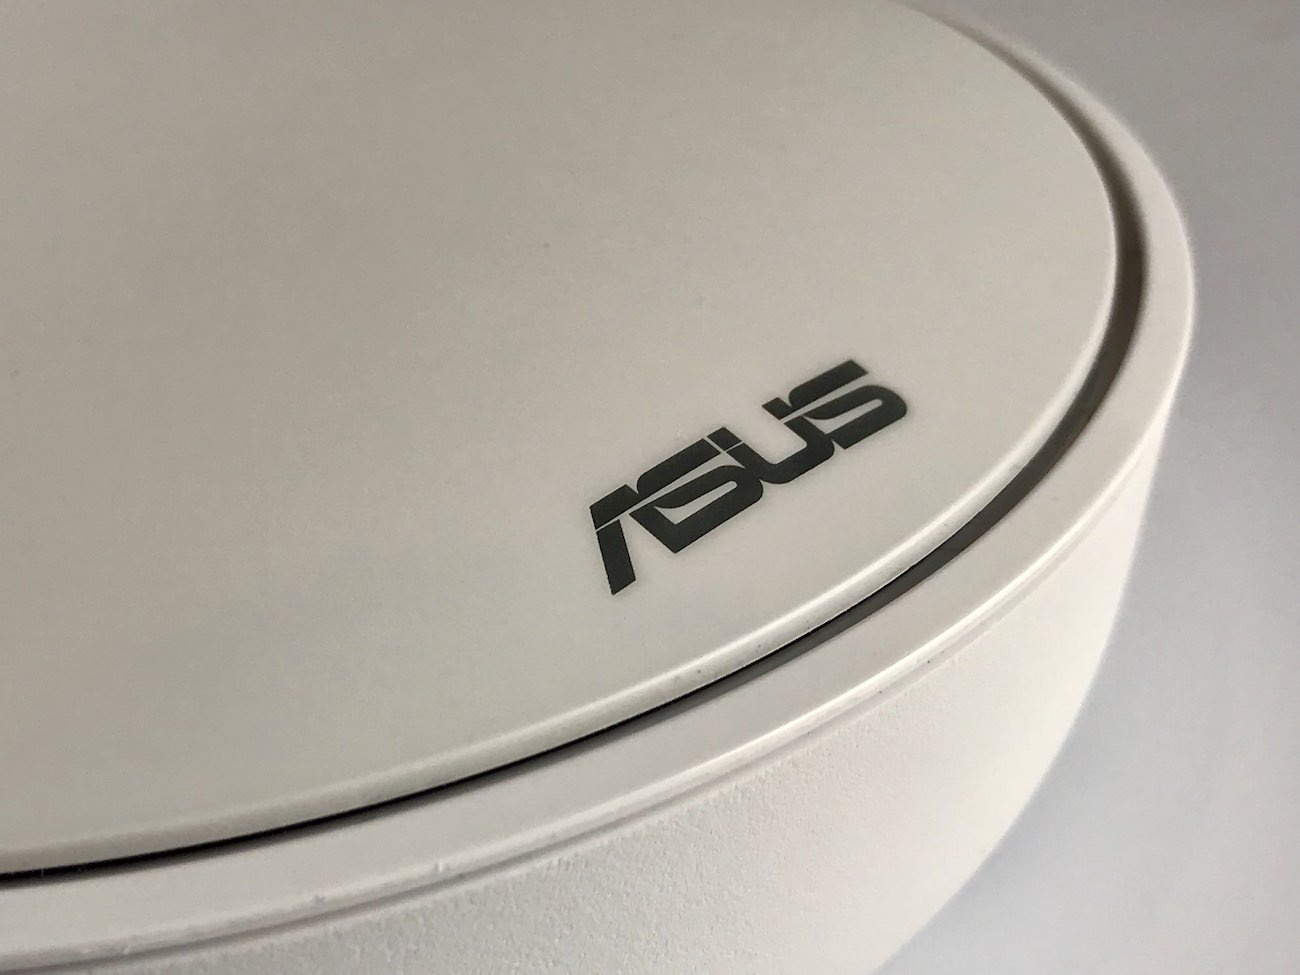 Review: ASUS Lyra mesh networking system